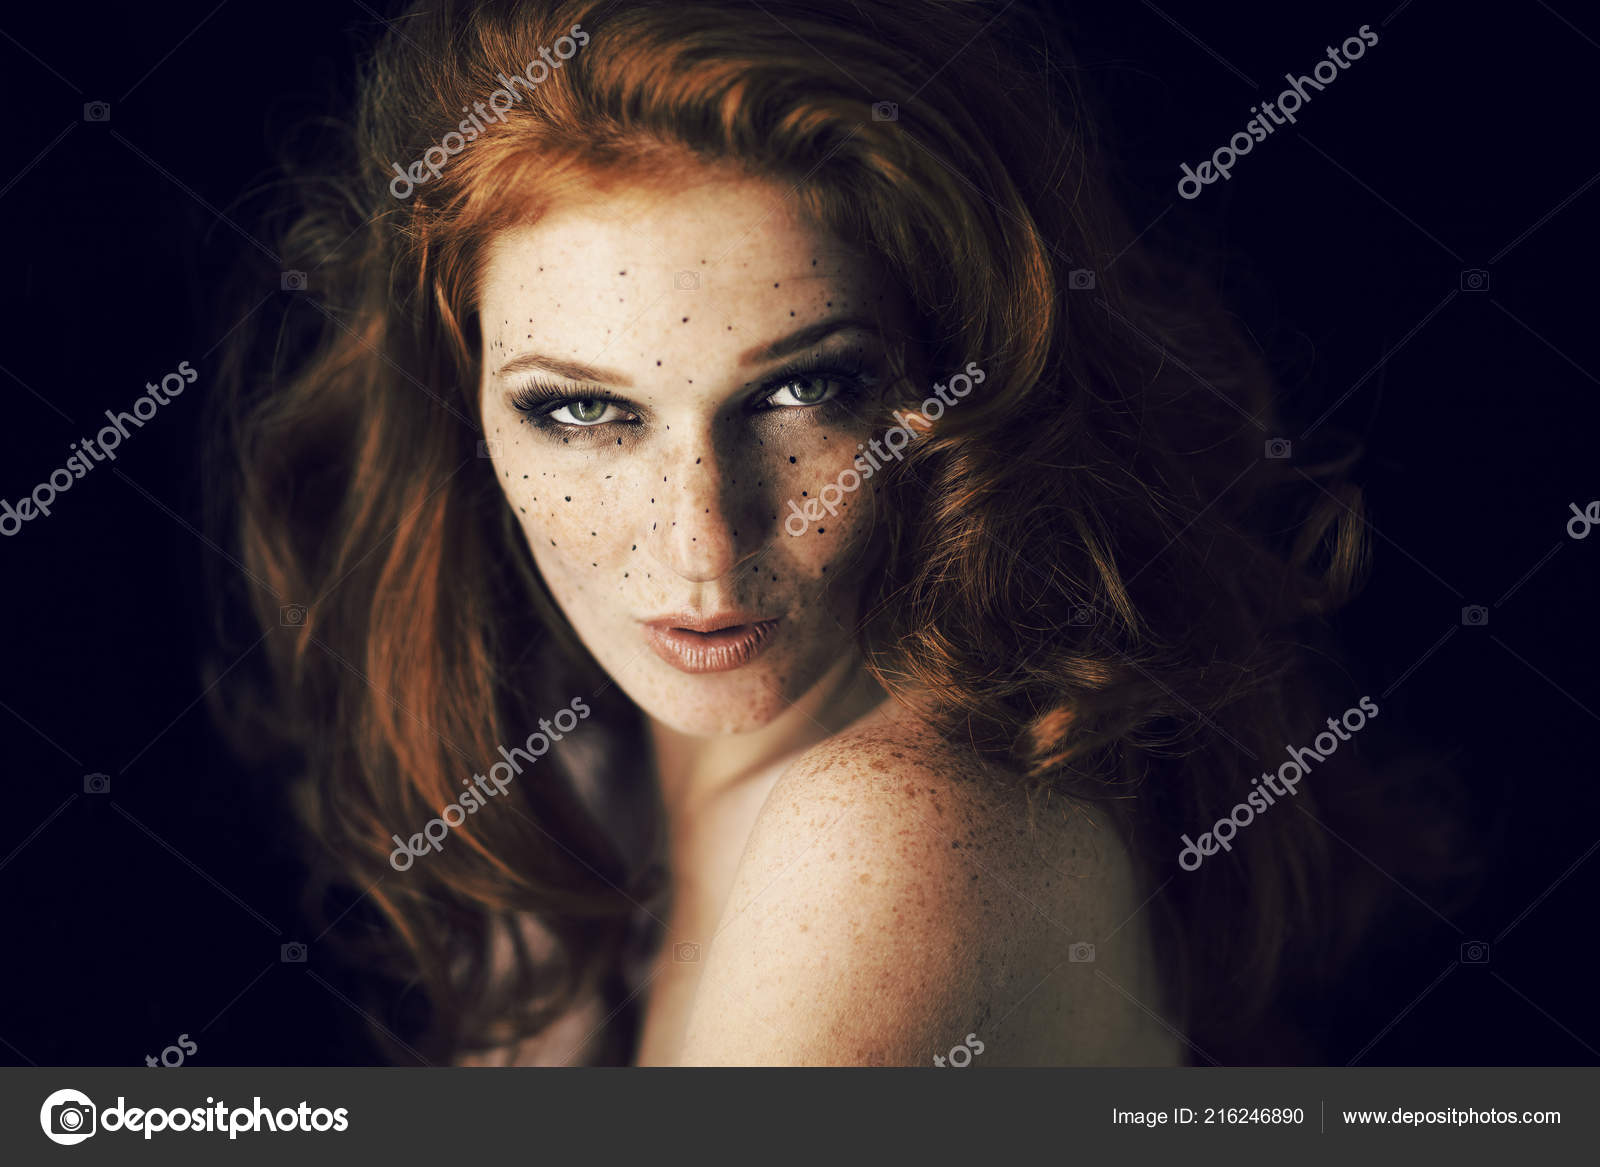 Girl with red hair freckles